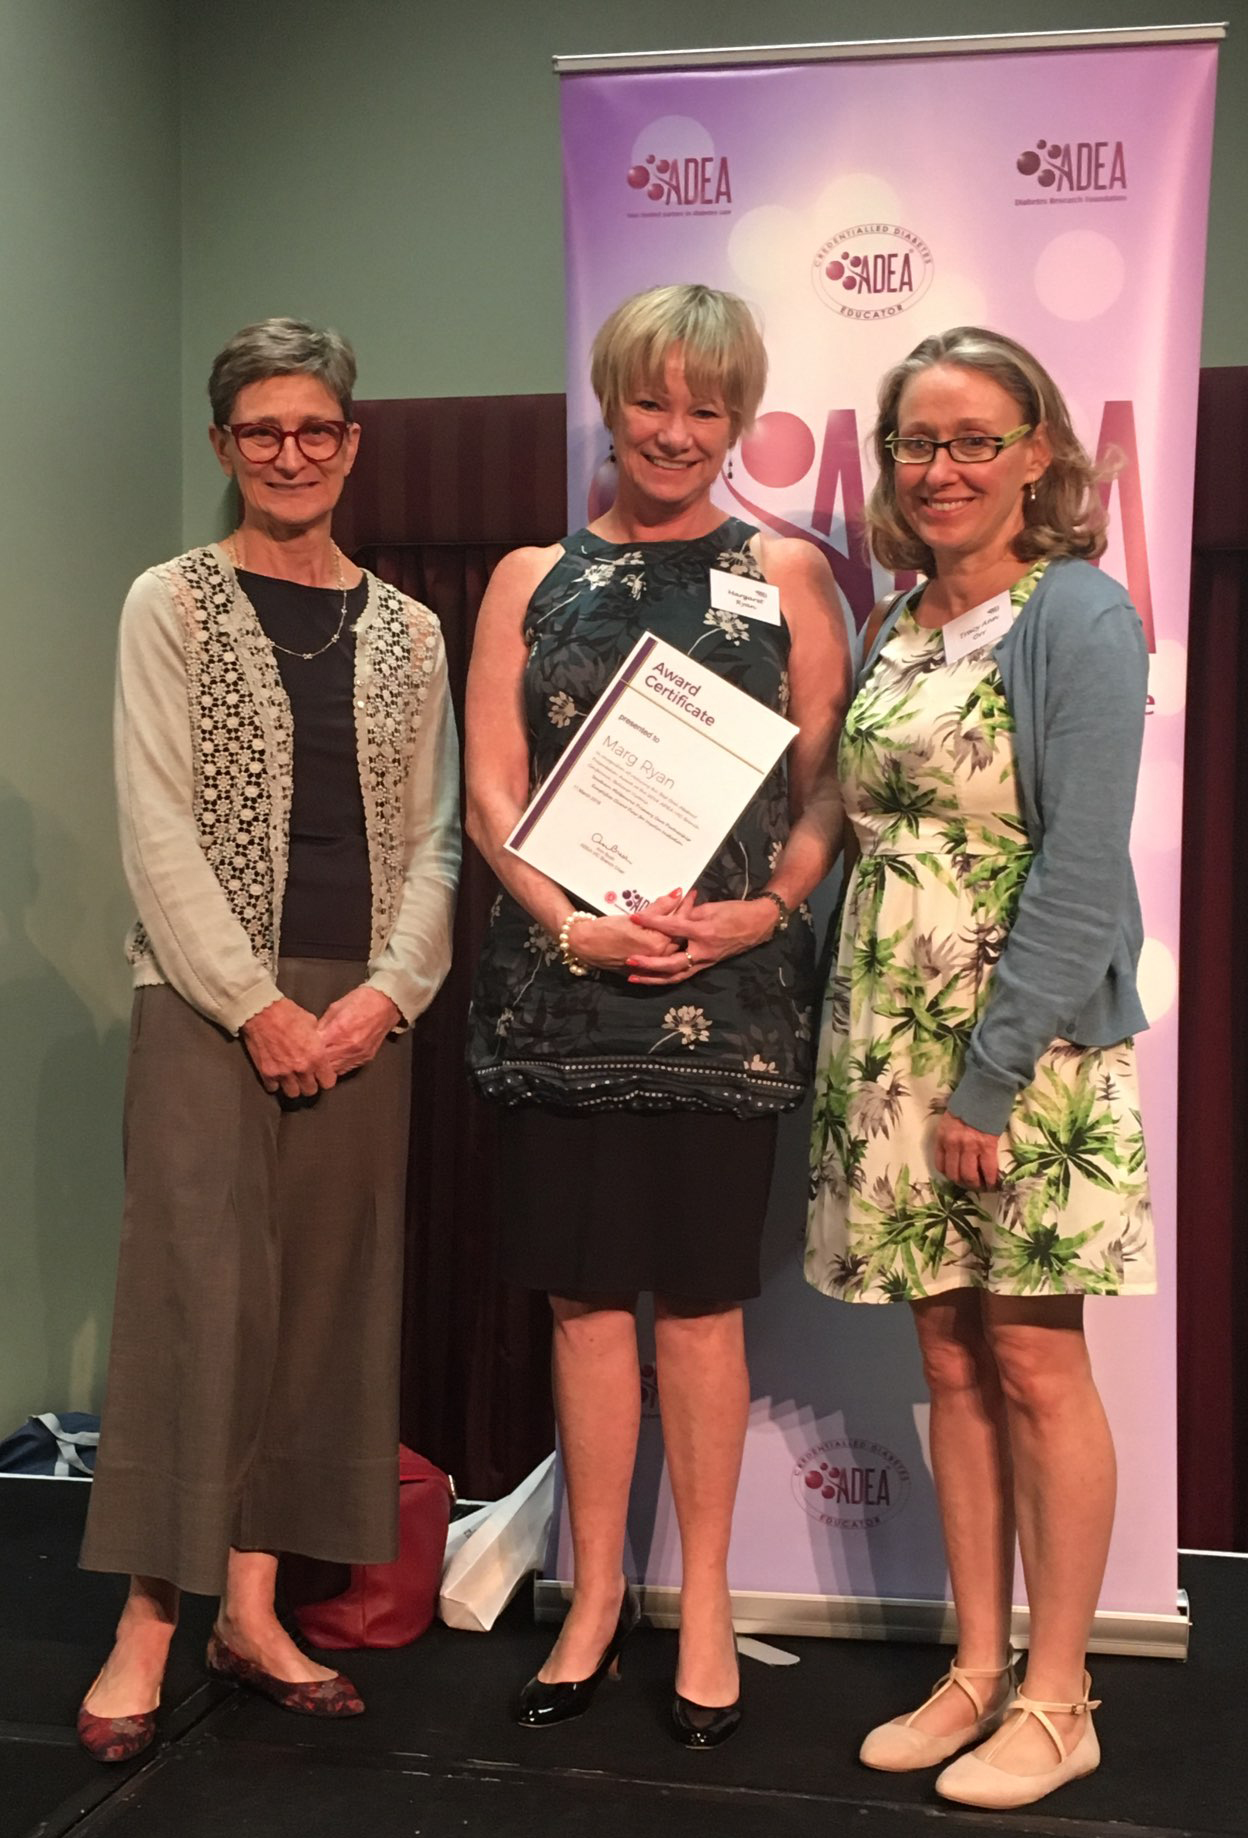 Image shows Joanne Ramadge, Marg Ryan and Tracy Orr with certificate